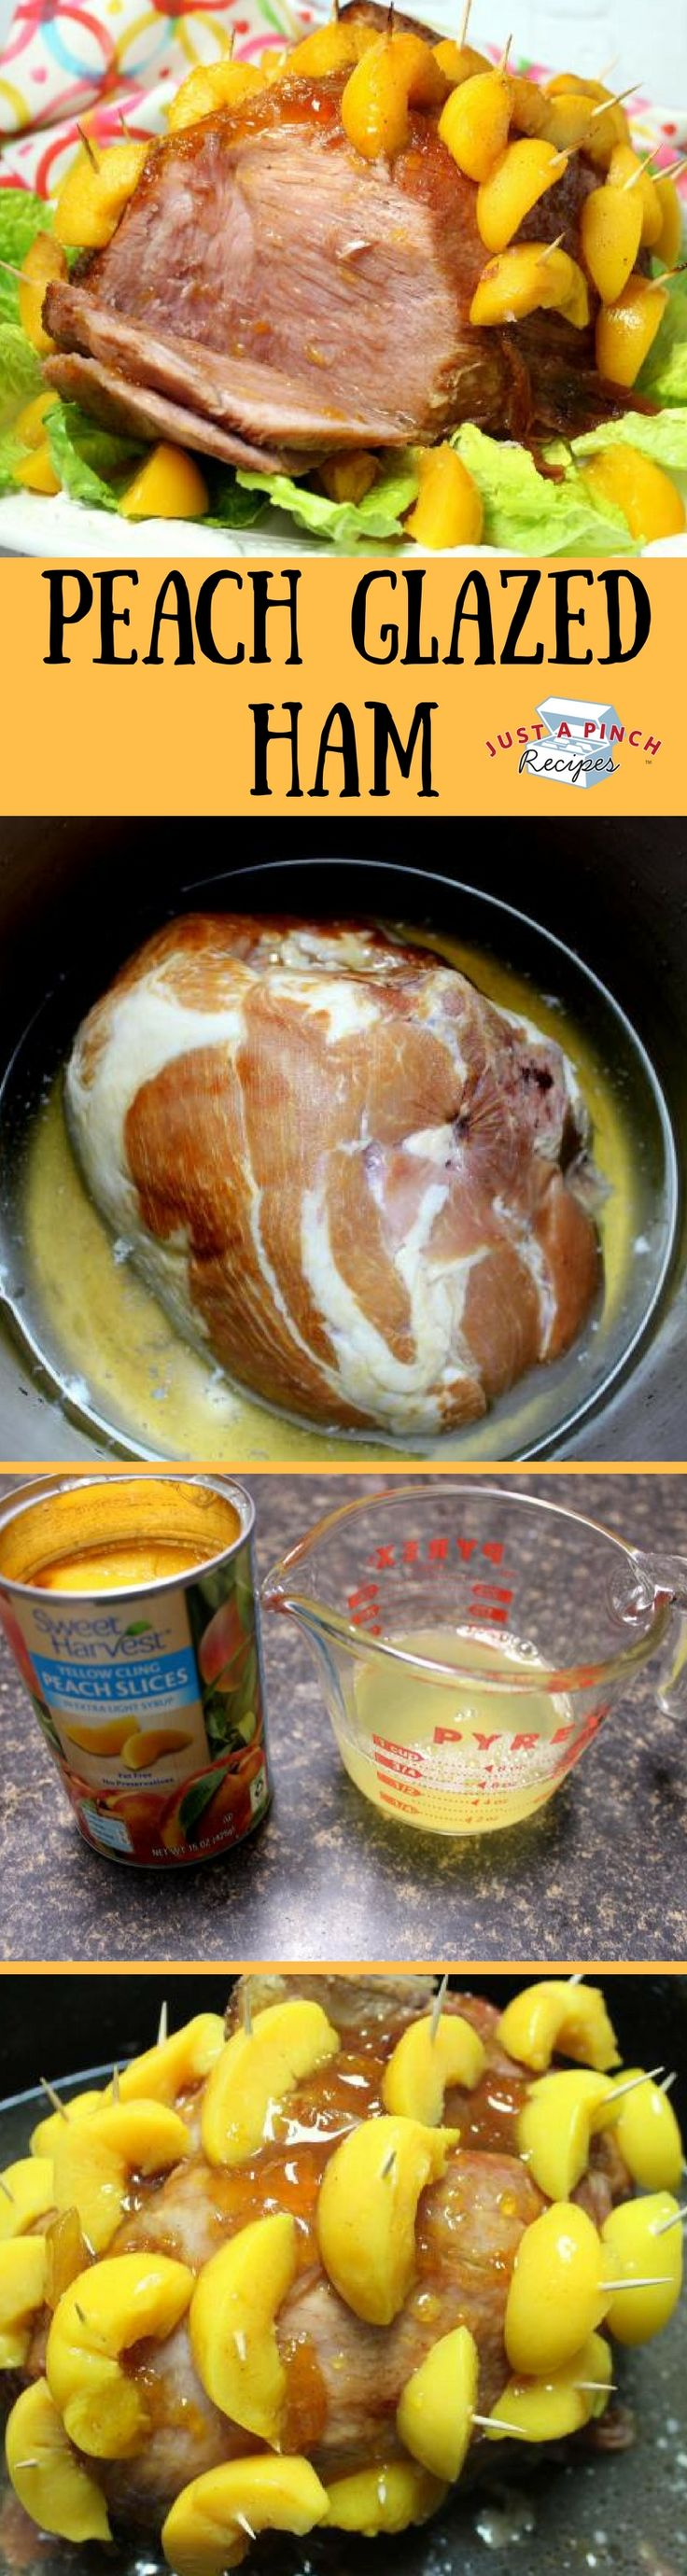 This is definitely a unique ham you should try this year for Easter dinner. The sweet peach glaze is a nice contrast to the smokiness of the ham.